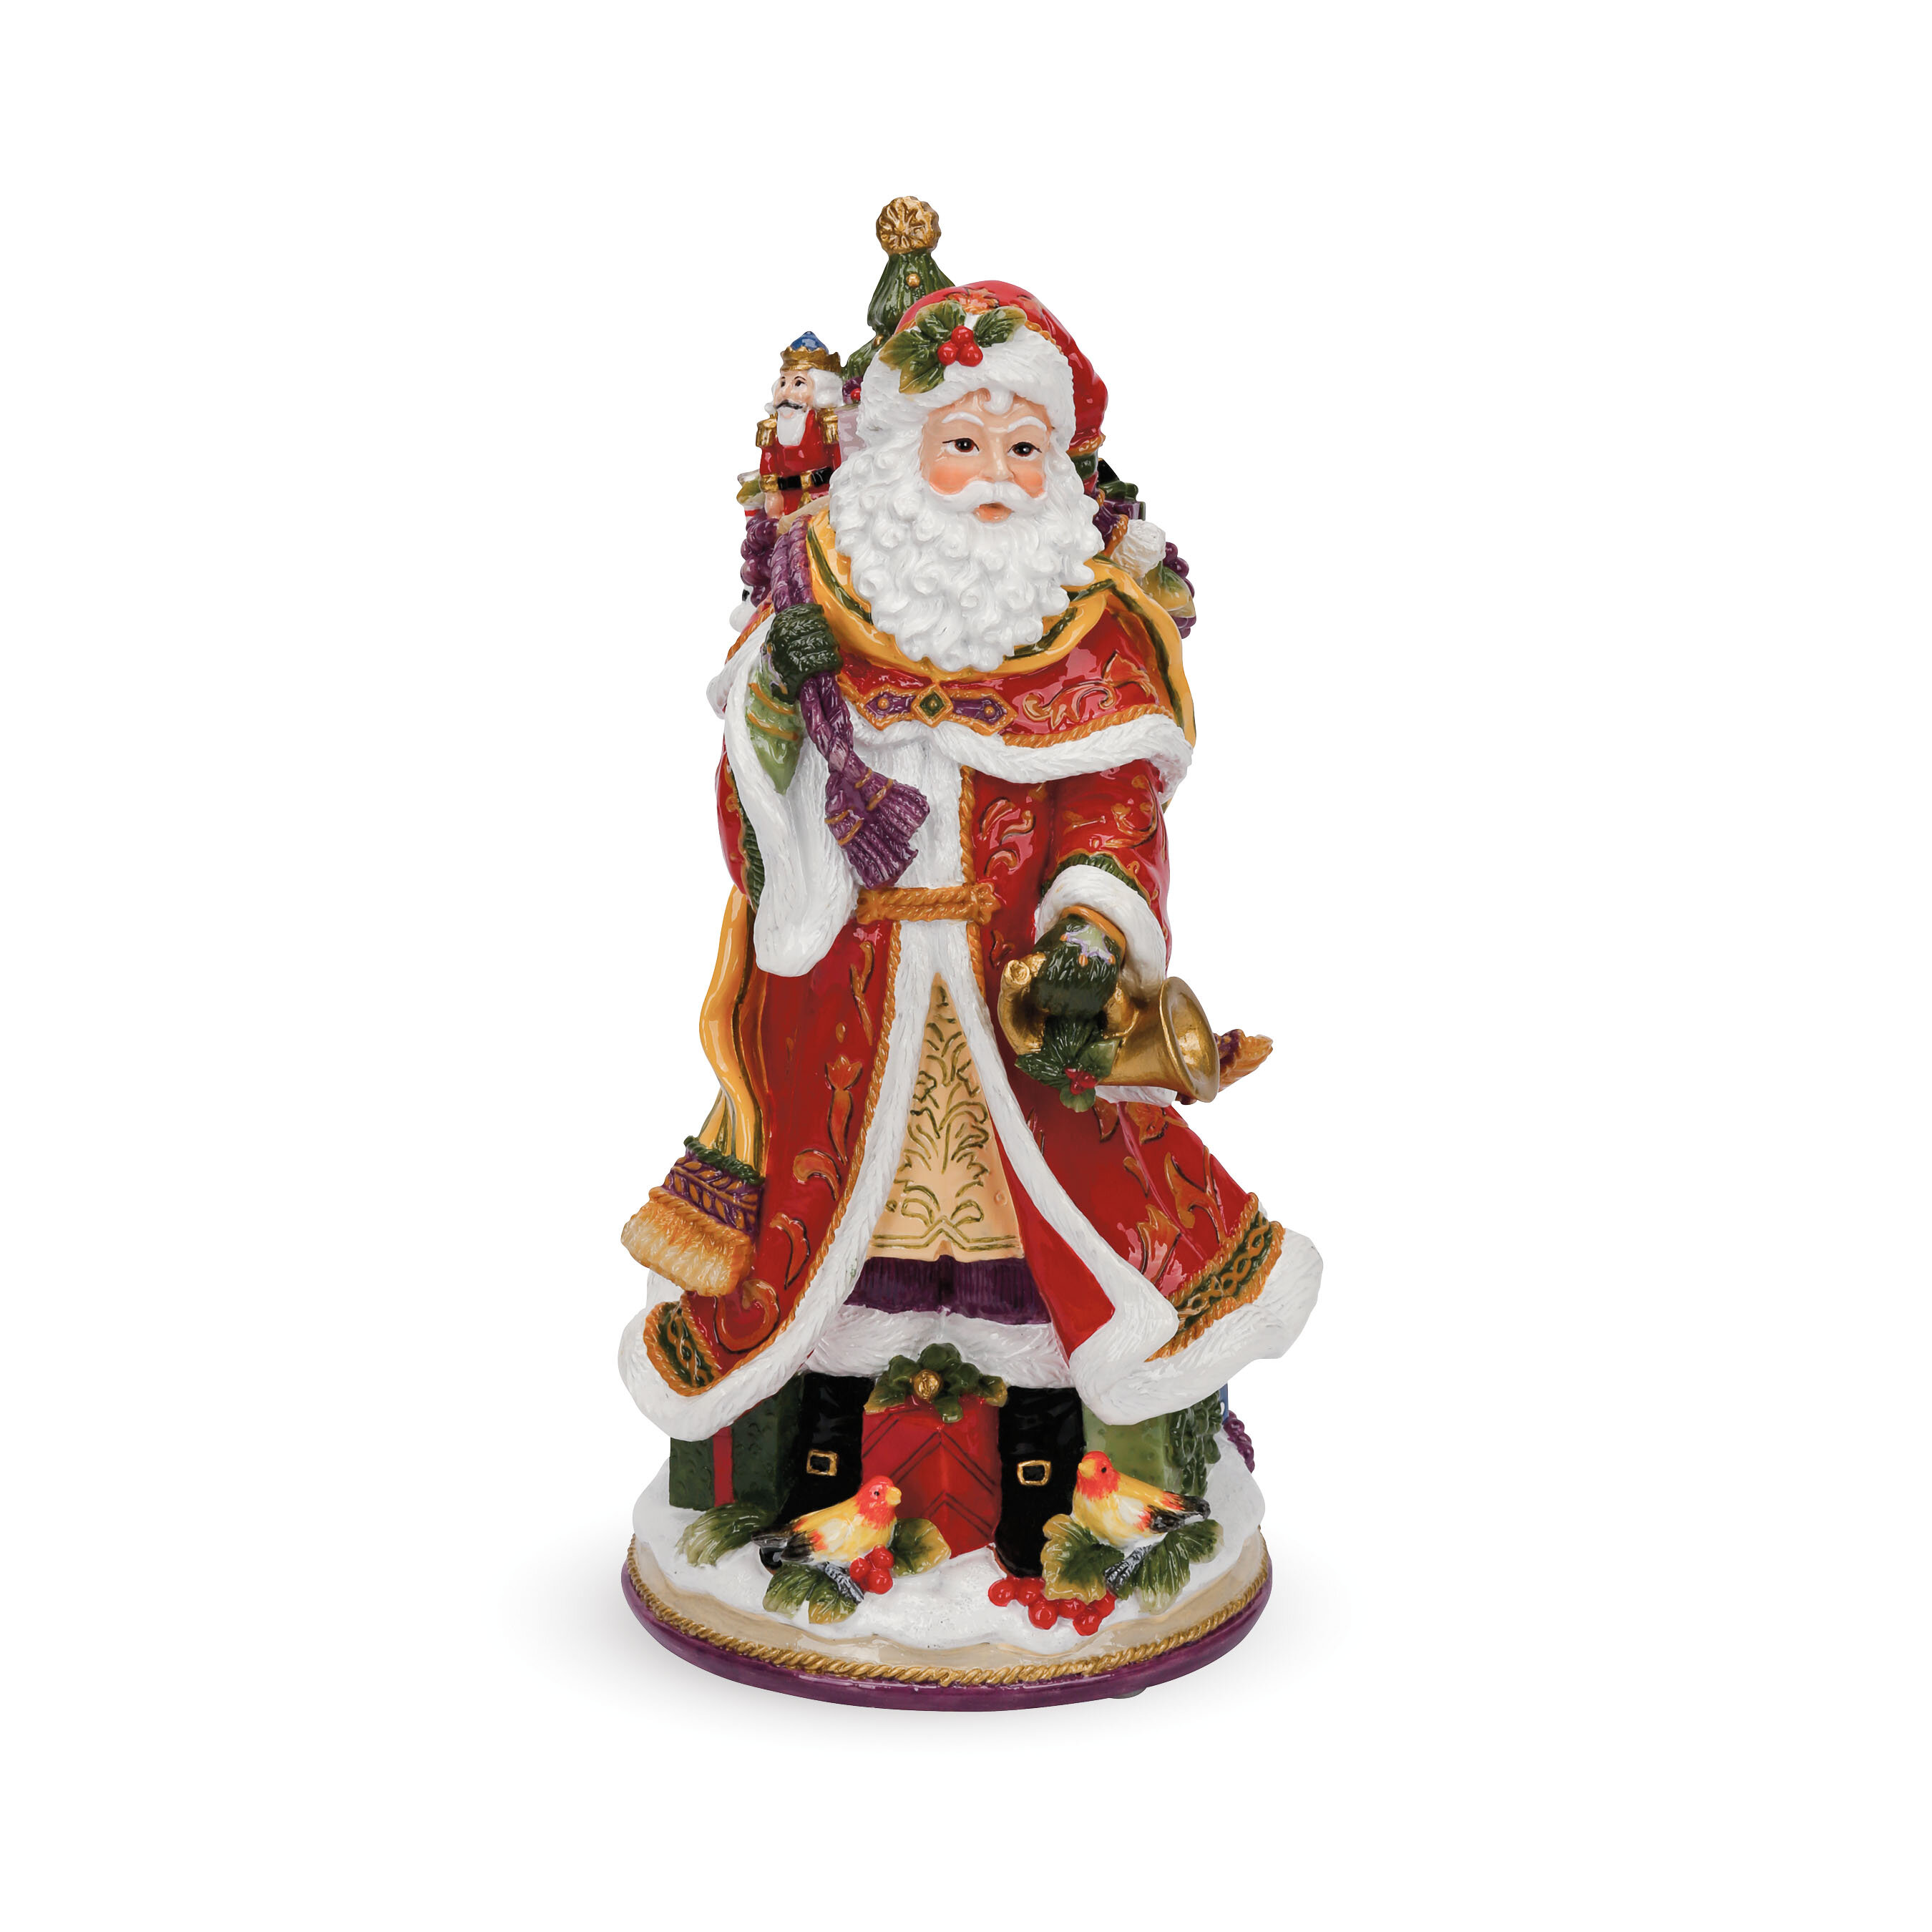 santa toys decorative sleigh decor products doll santas with reindeer and wildflower claus